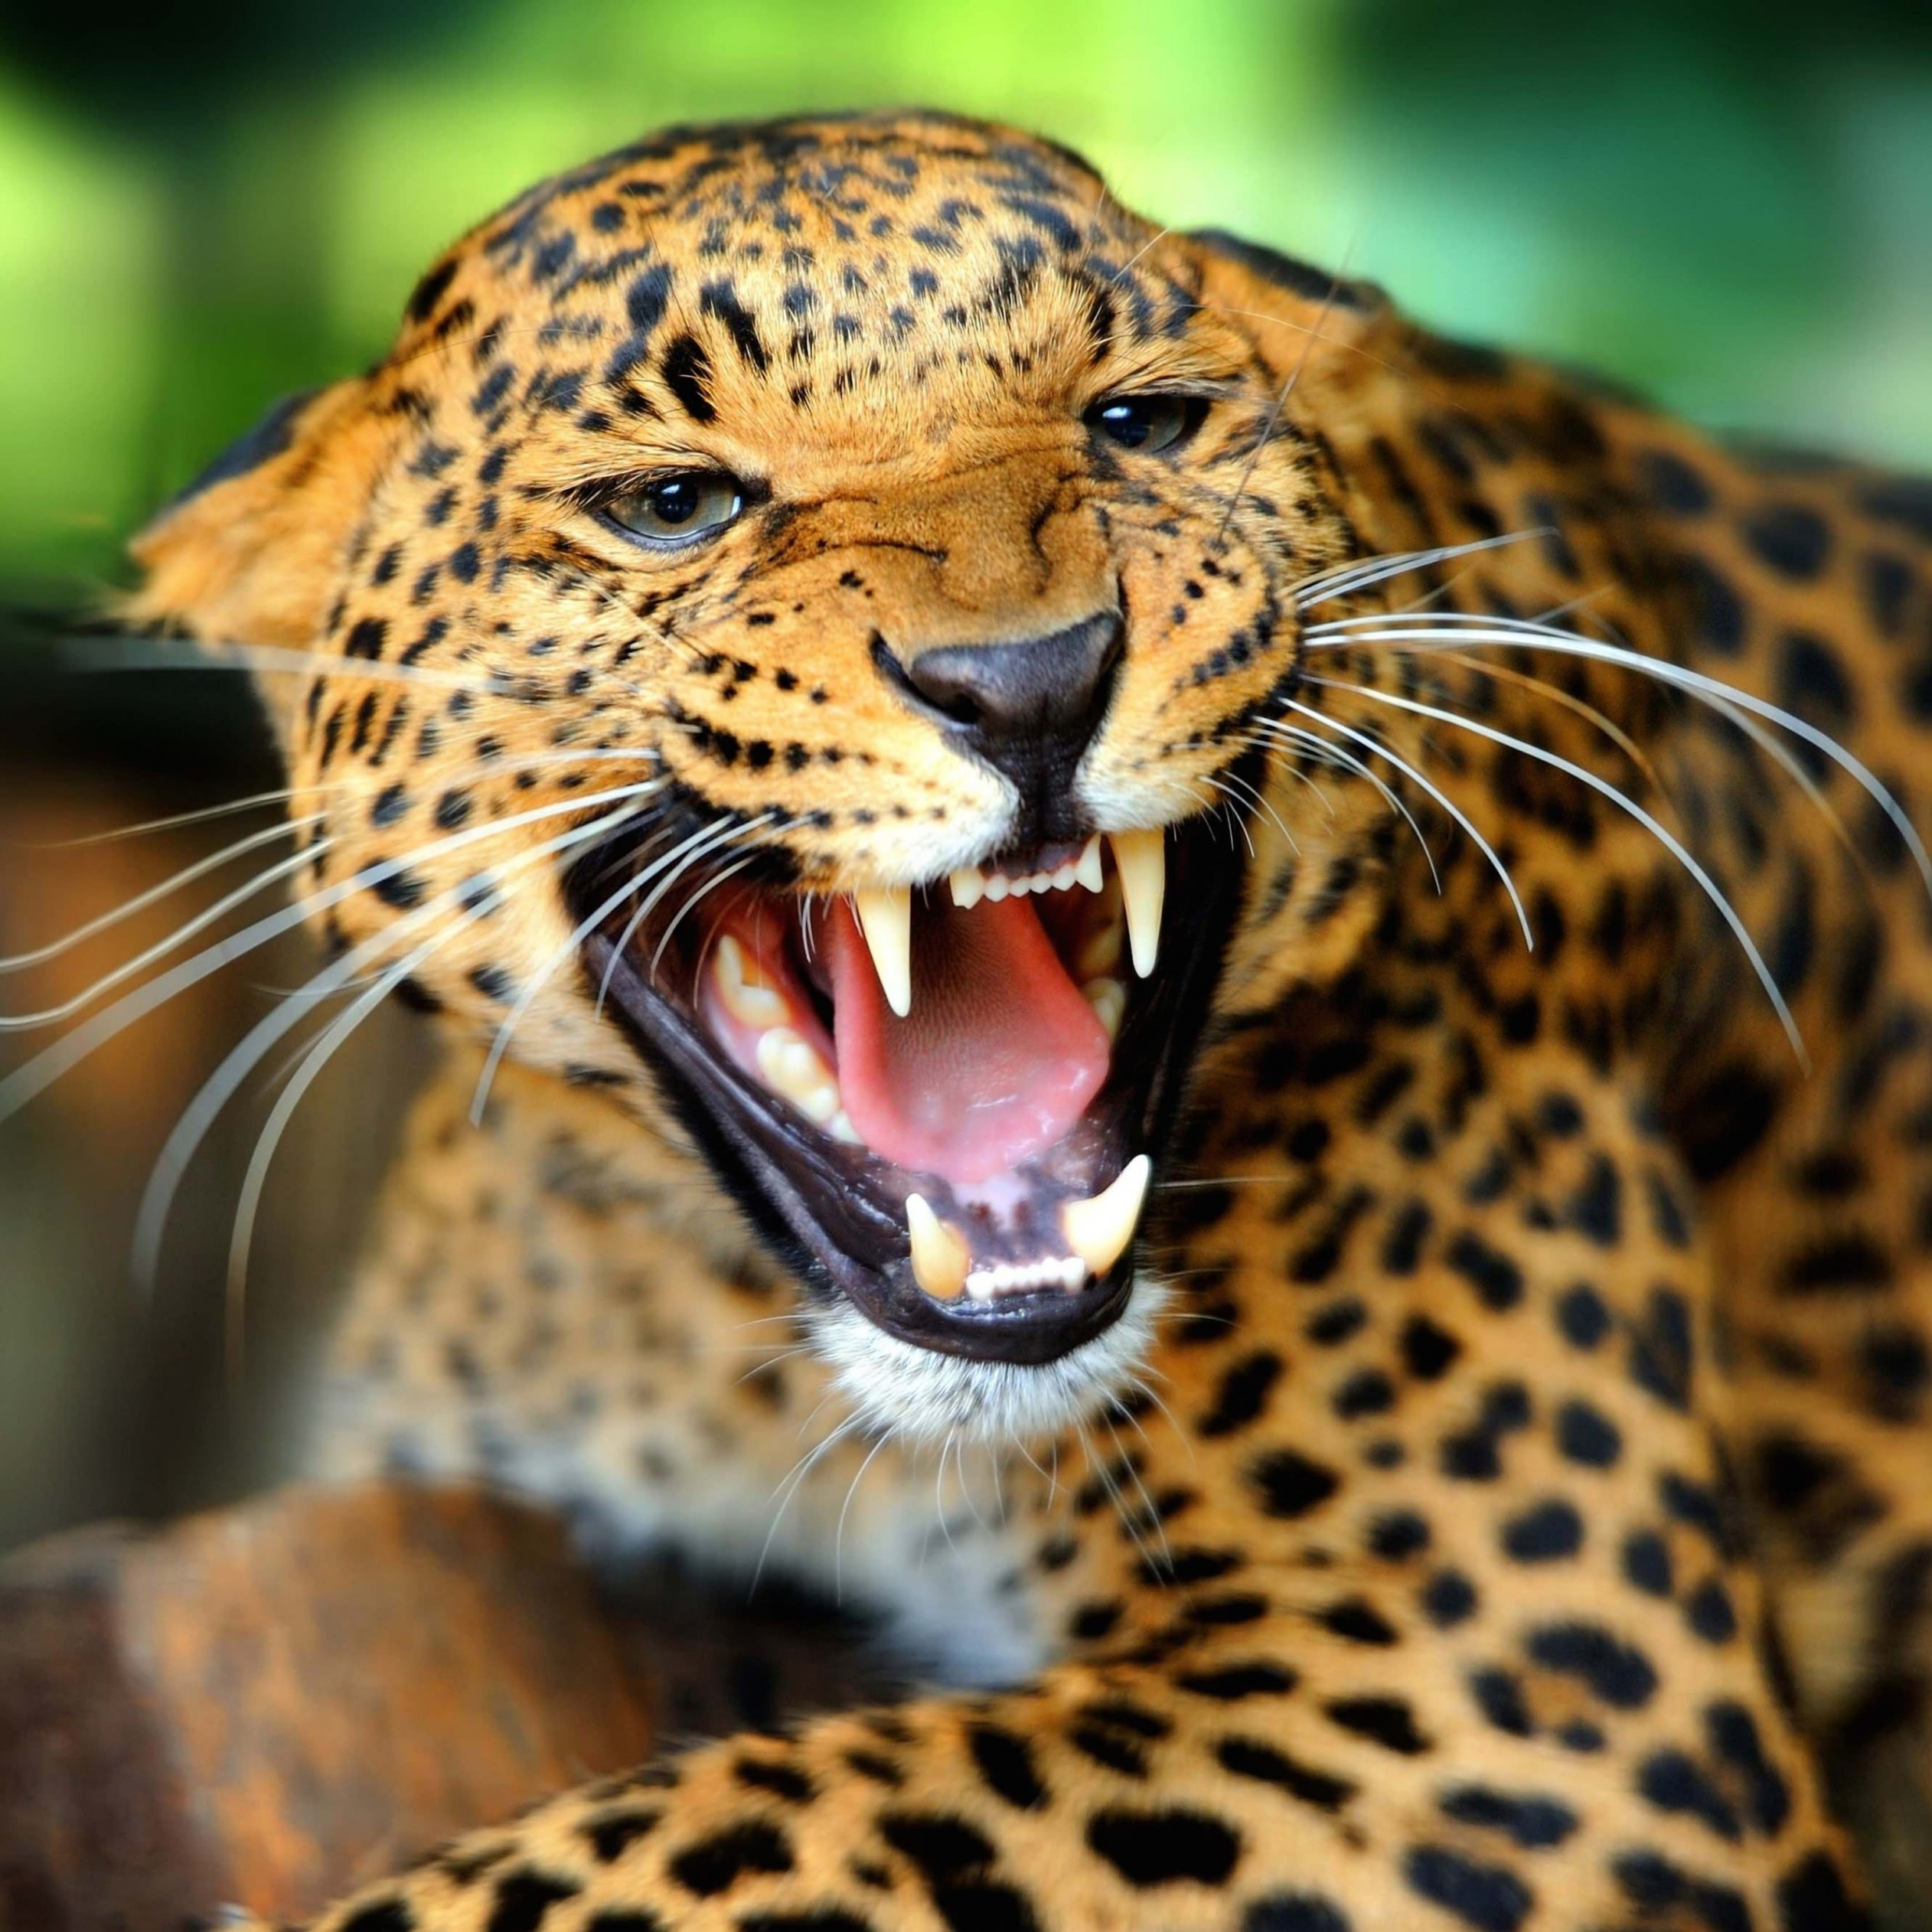 Growling Leopard Wallpaper for Apple iPad Air